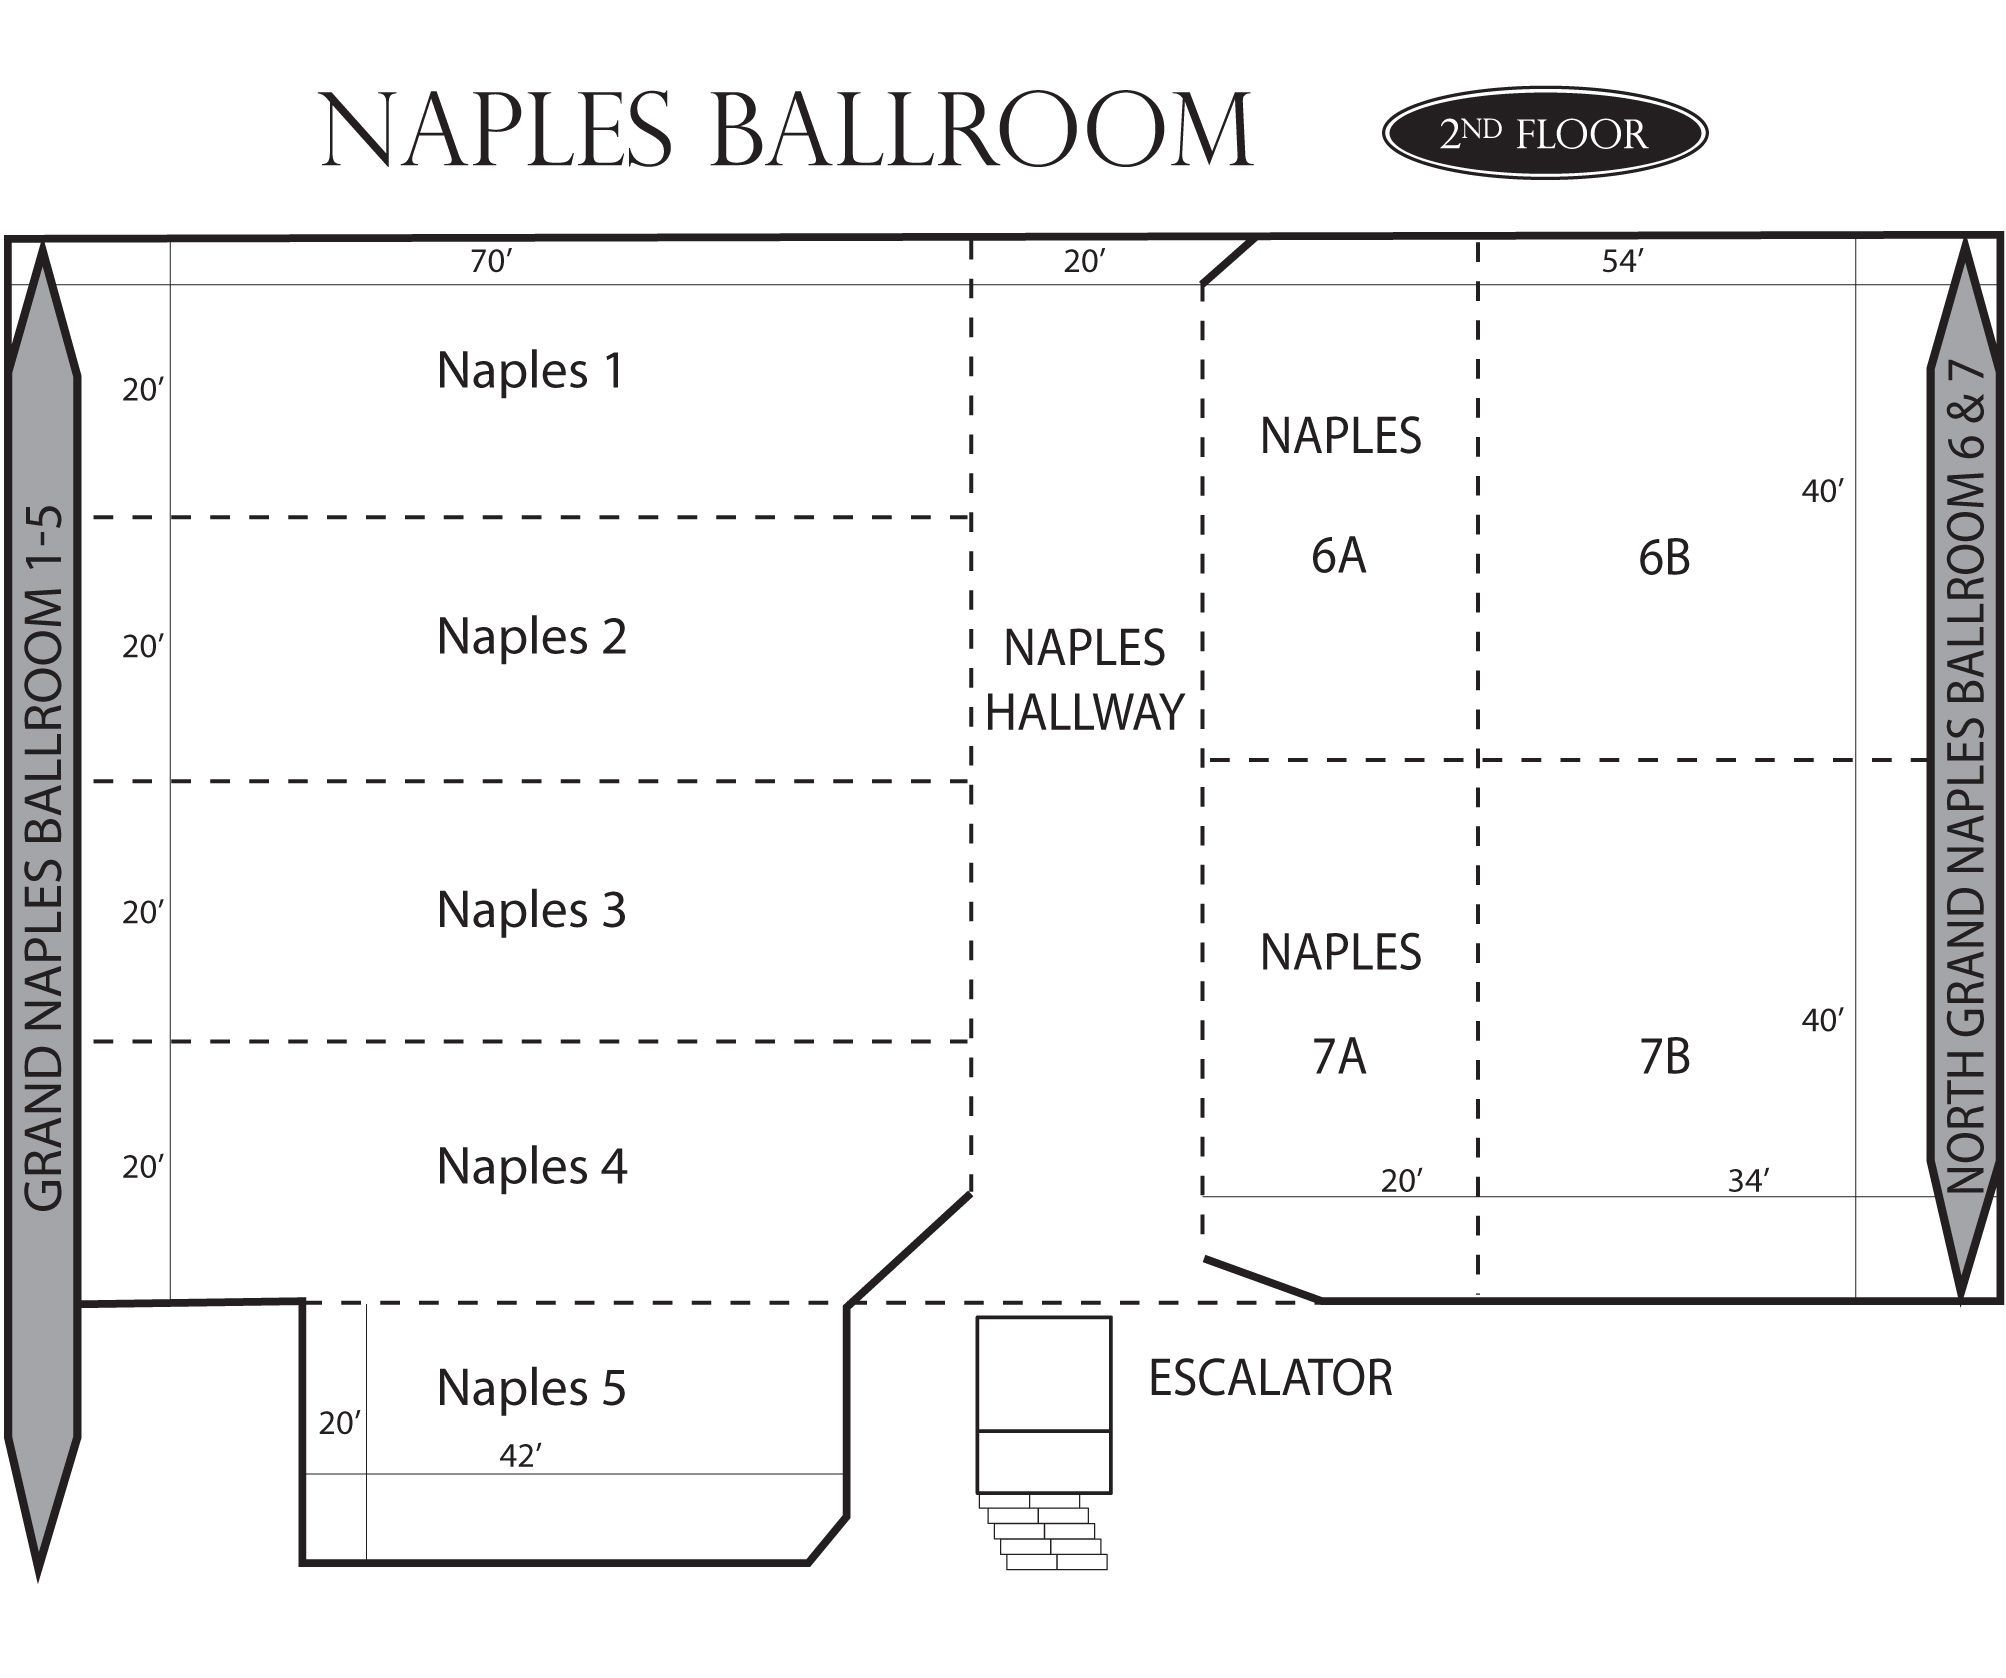 Naples Ballroom Floorplan